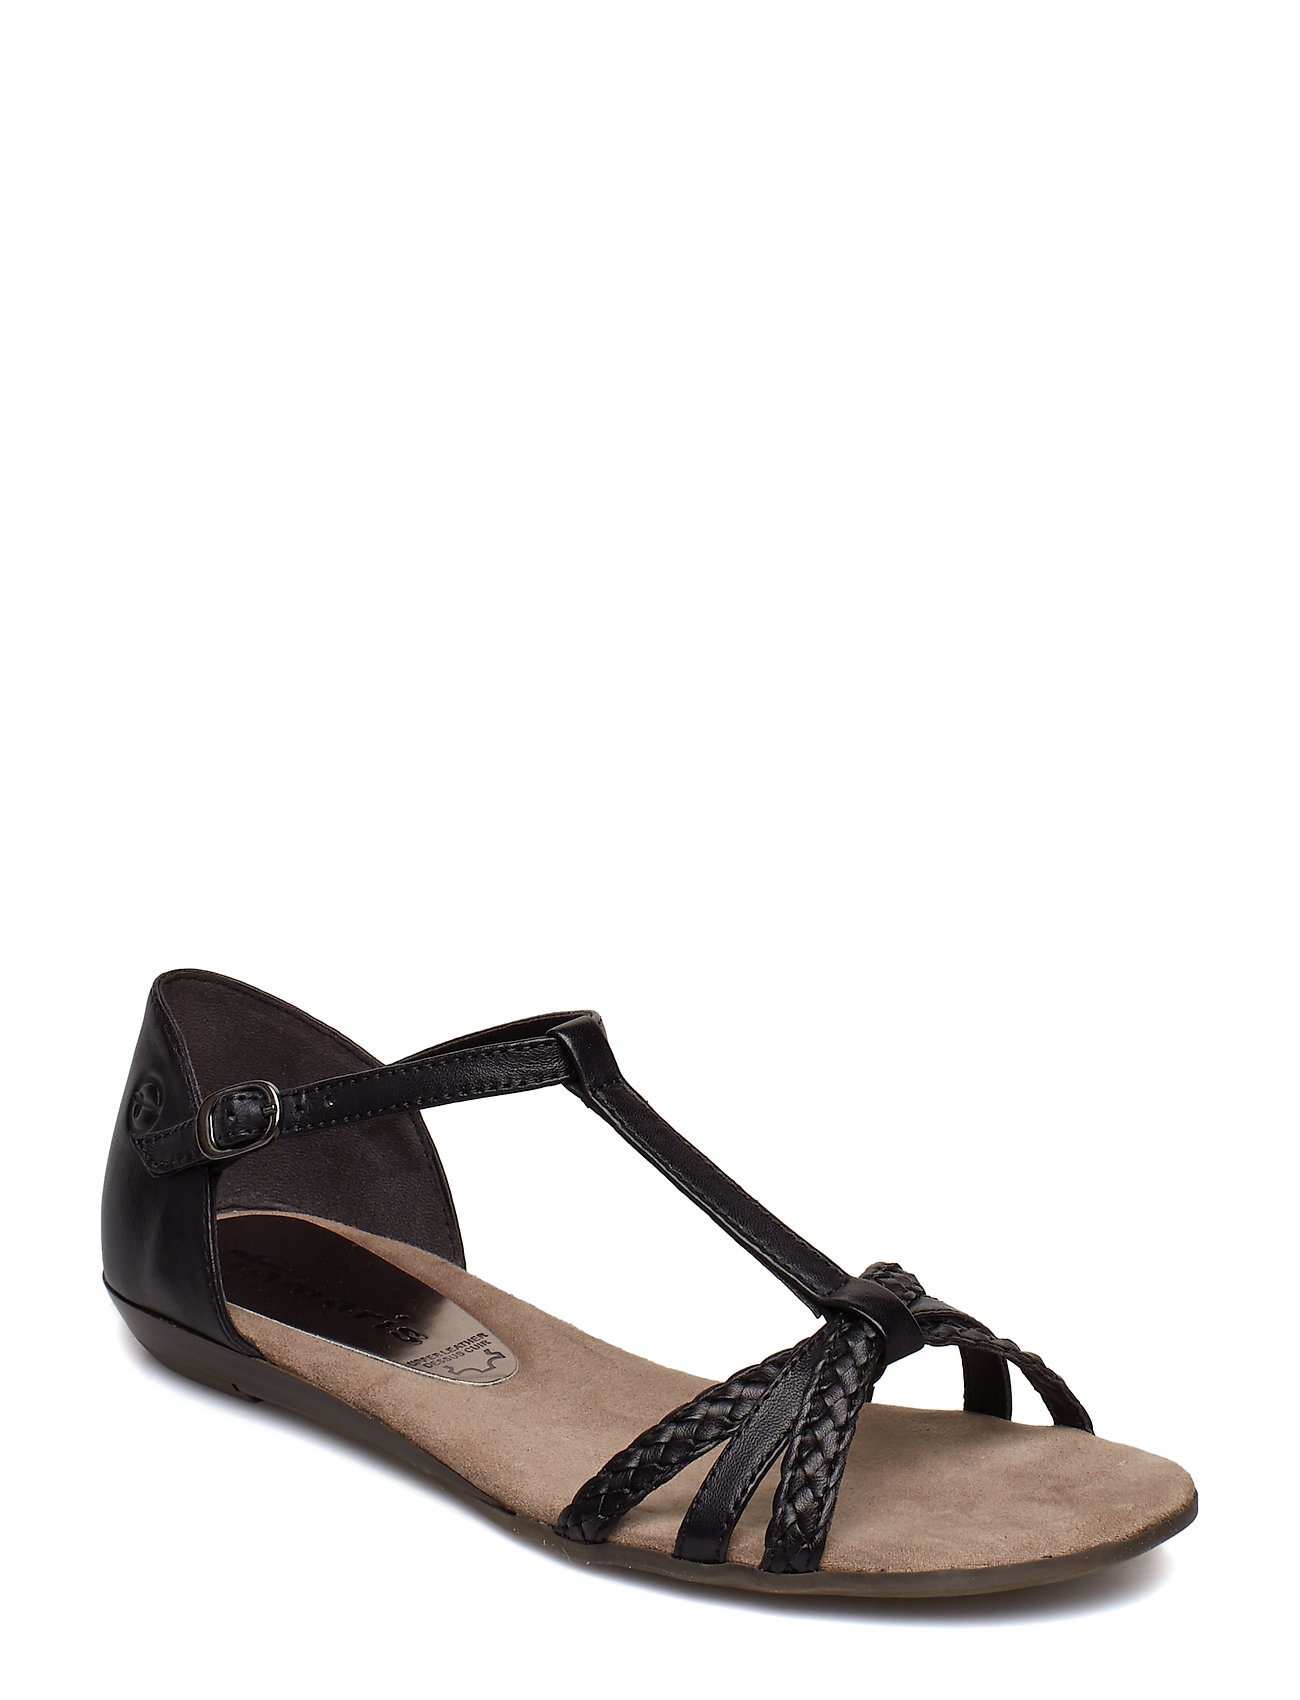 Tamaris Sandals - BLACK